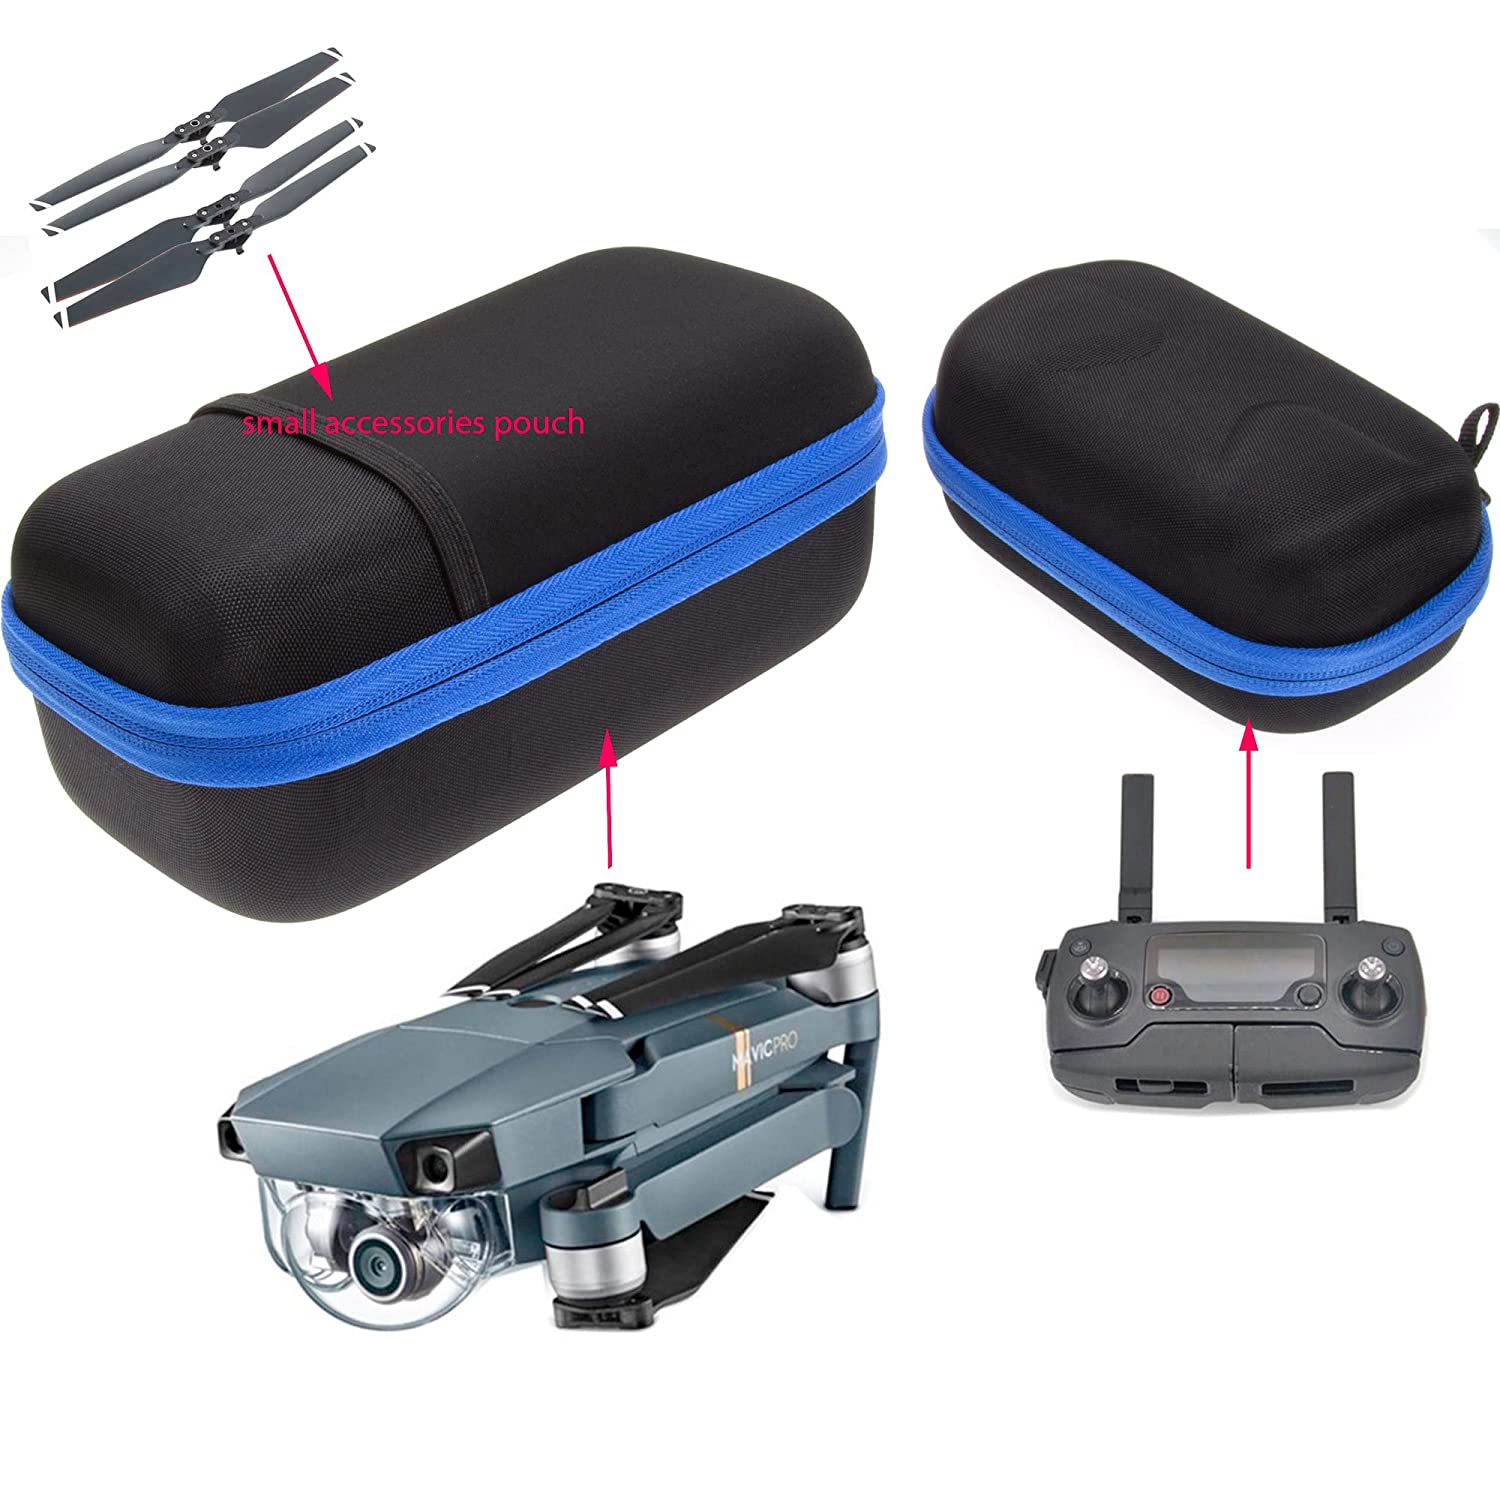 ButterFox Carrying Case Set for DJI Mavic Pro Drone, Remote Controller and Small Accessories (No Horrible Smell)